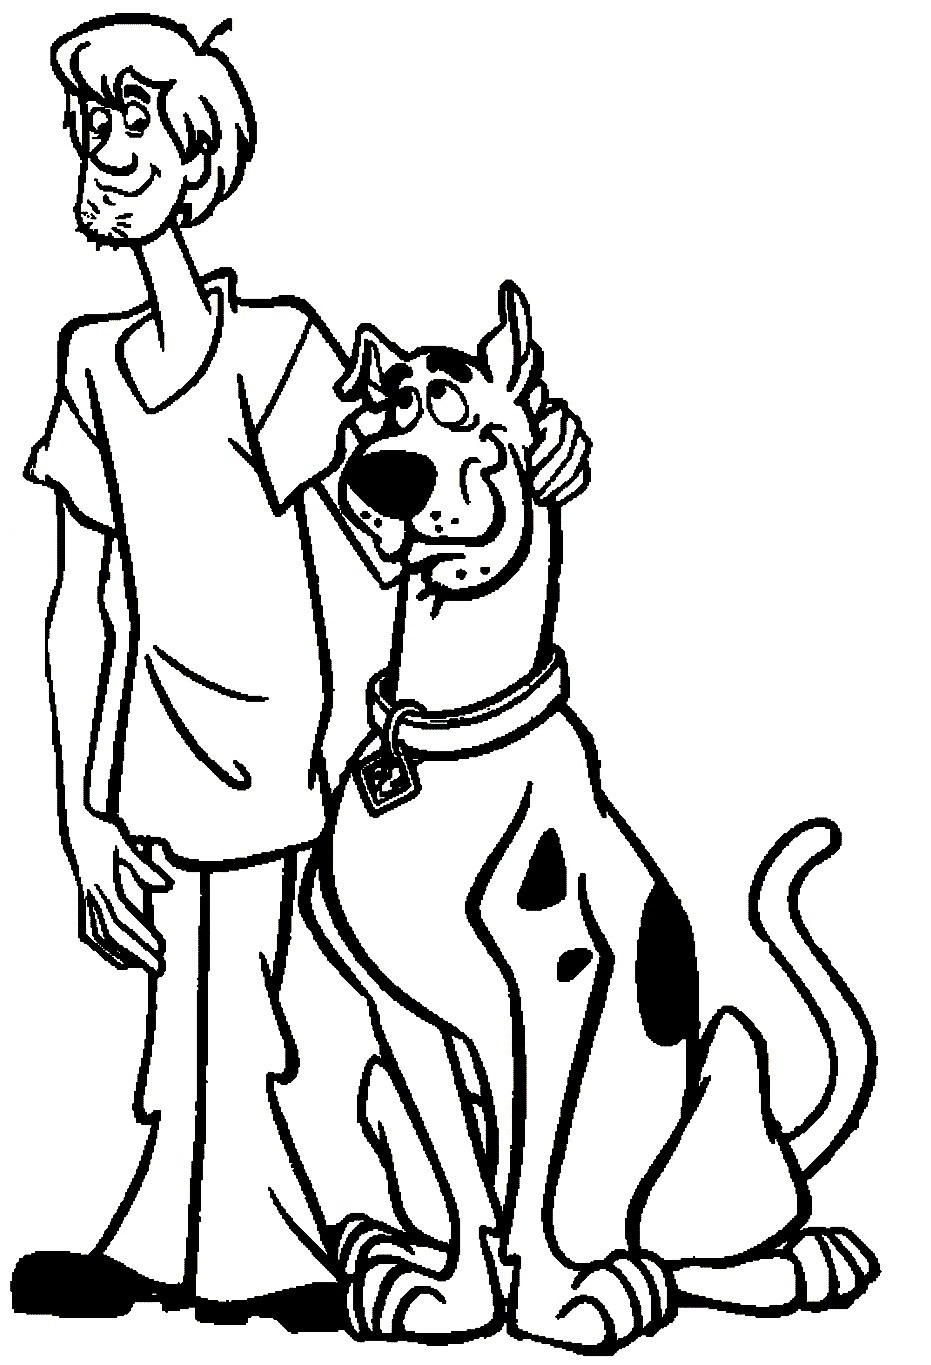 Coloring Pages For Boys Scooby Doo  Scooby Doo Printable Coloring Pages